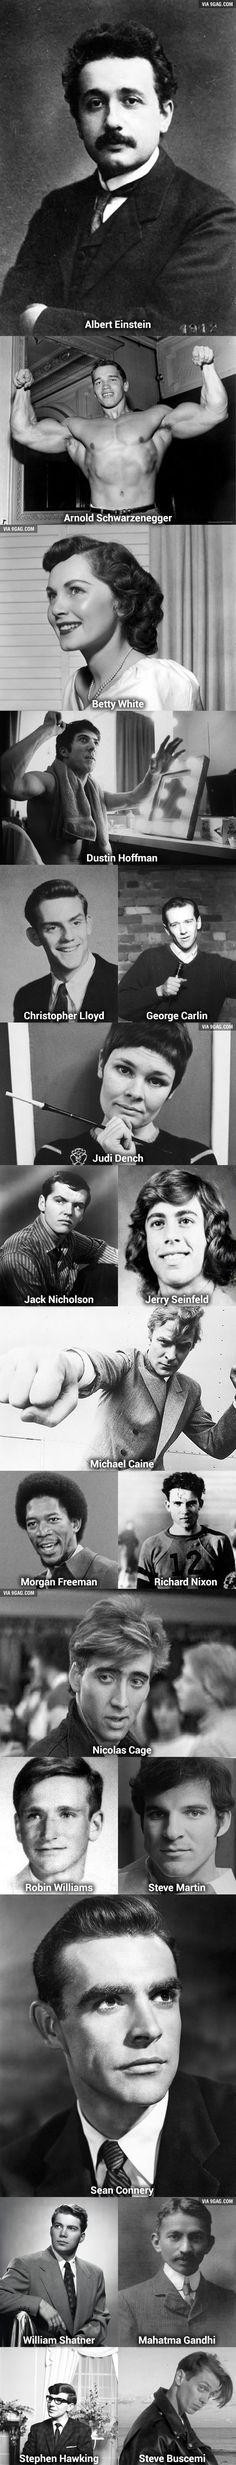 Famous old people when they were young.